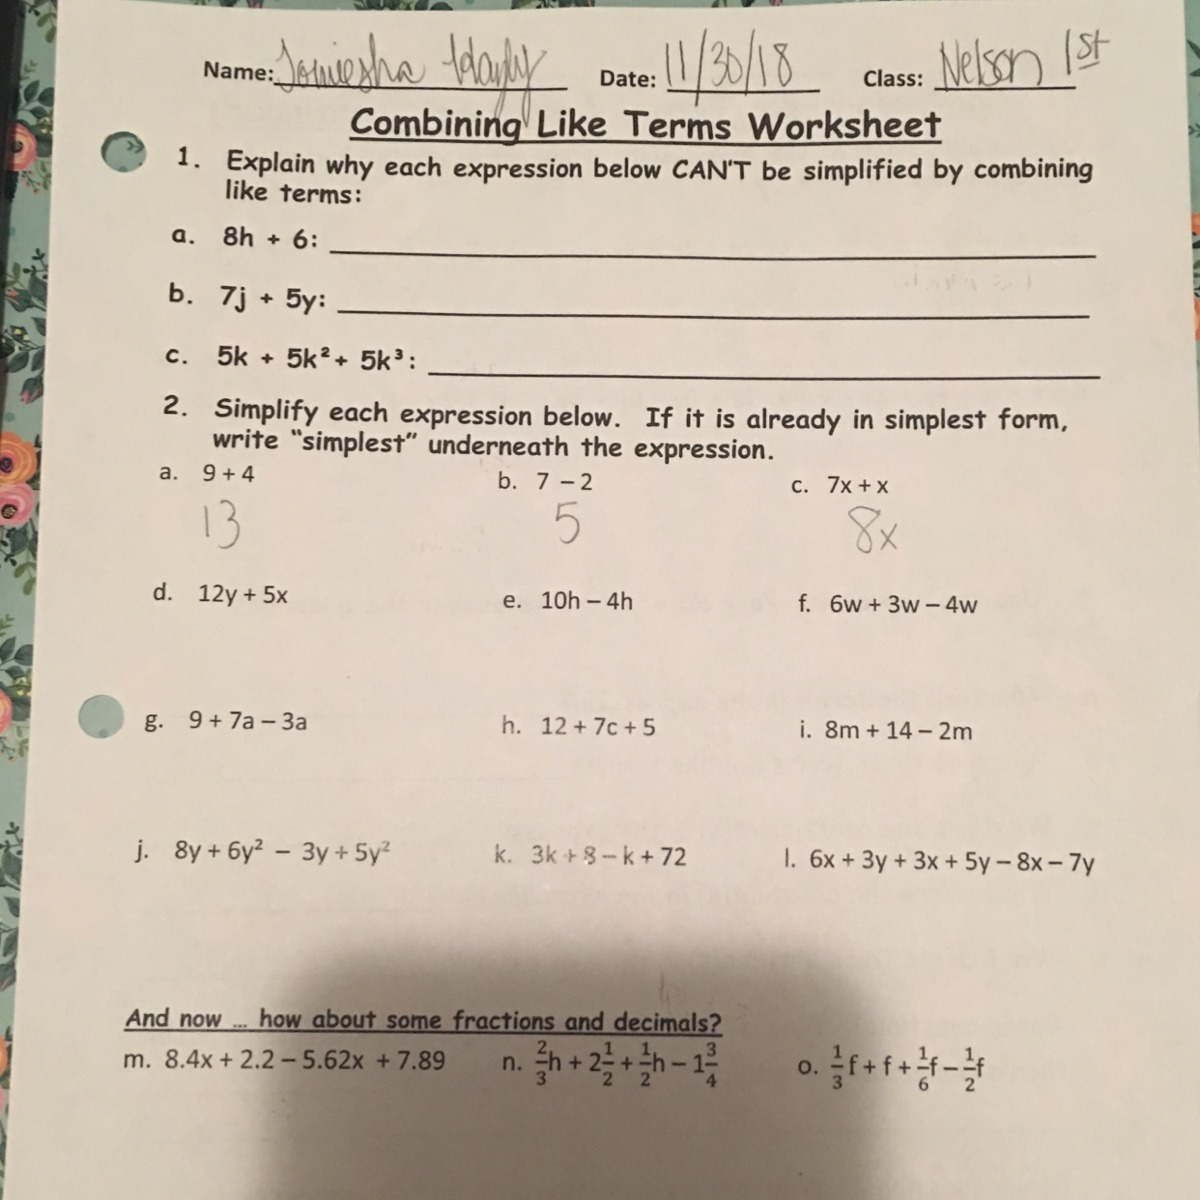 Combining Like Terms Simplify Each Expression Worksheet